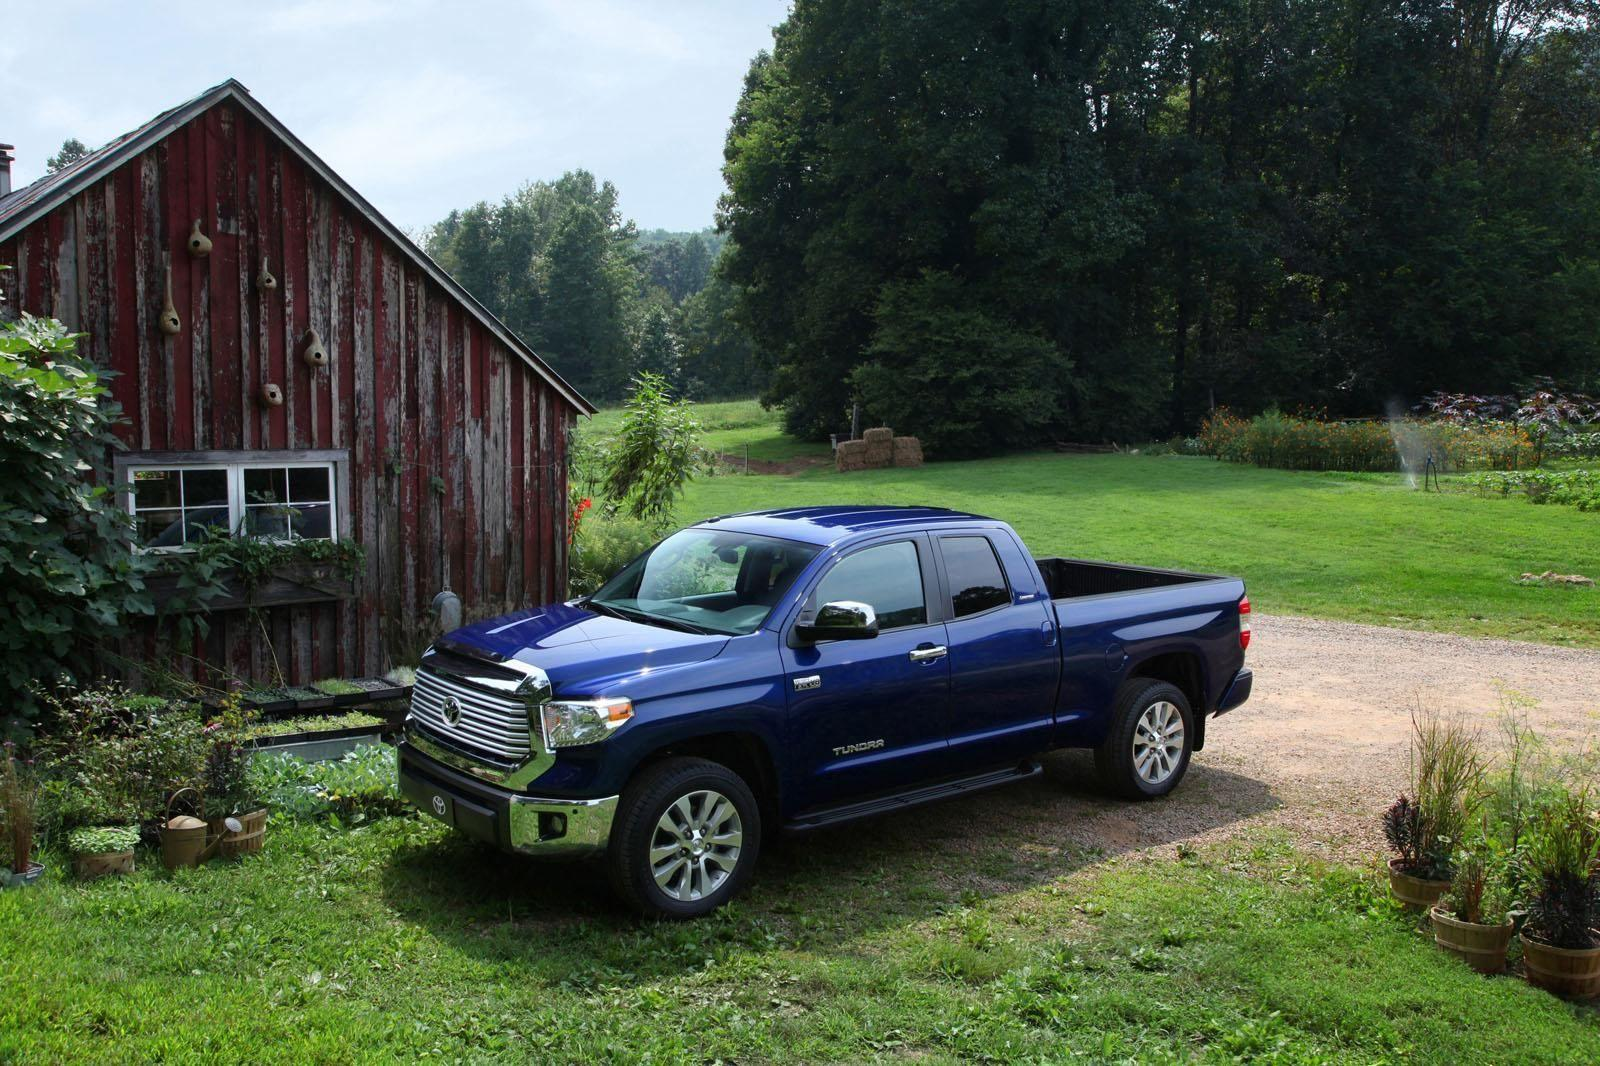 Toyota Tundra 2015 photo 110543 pictures at high resolution